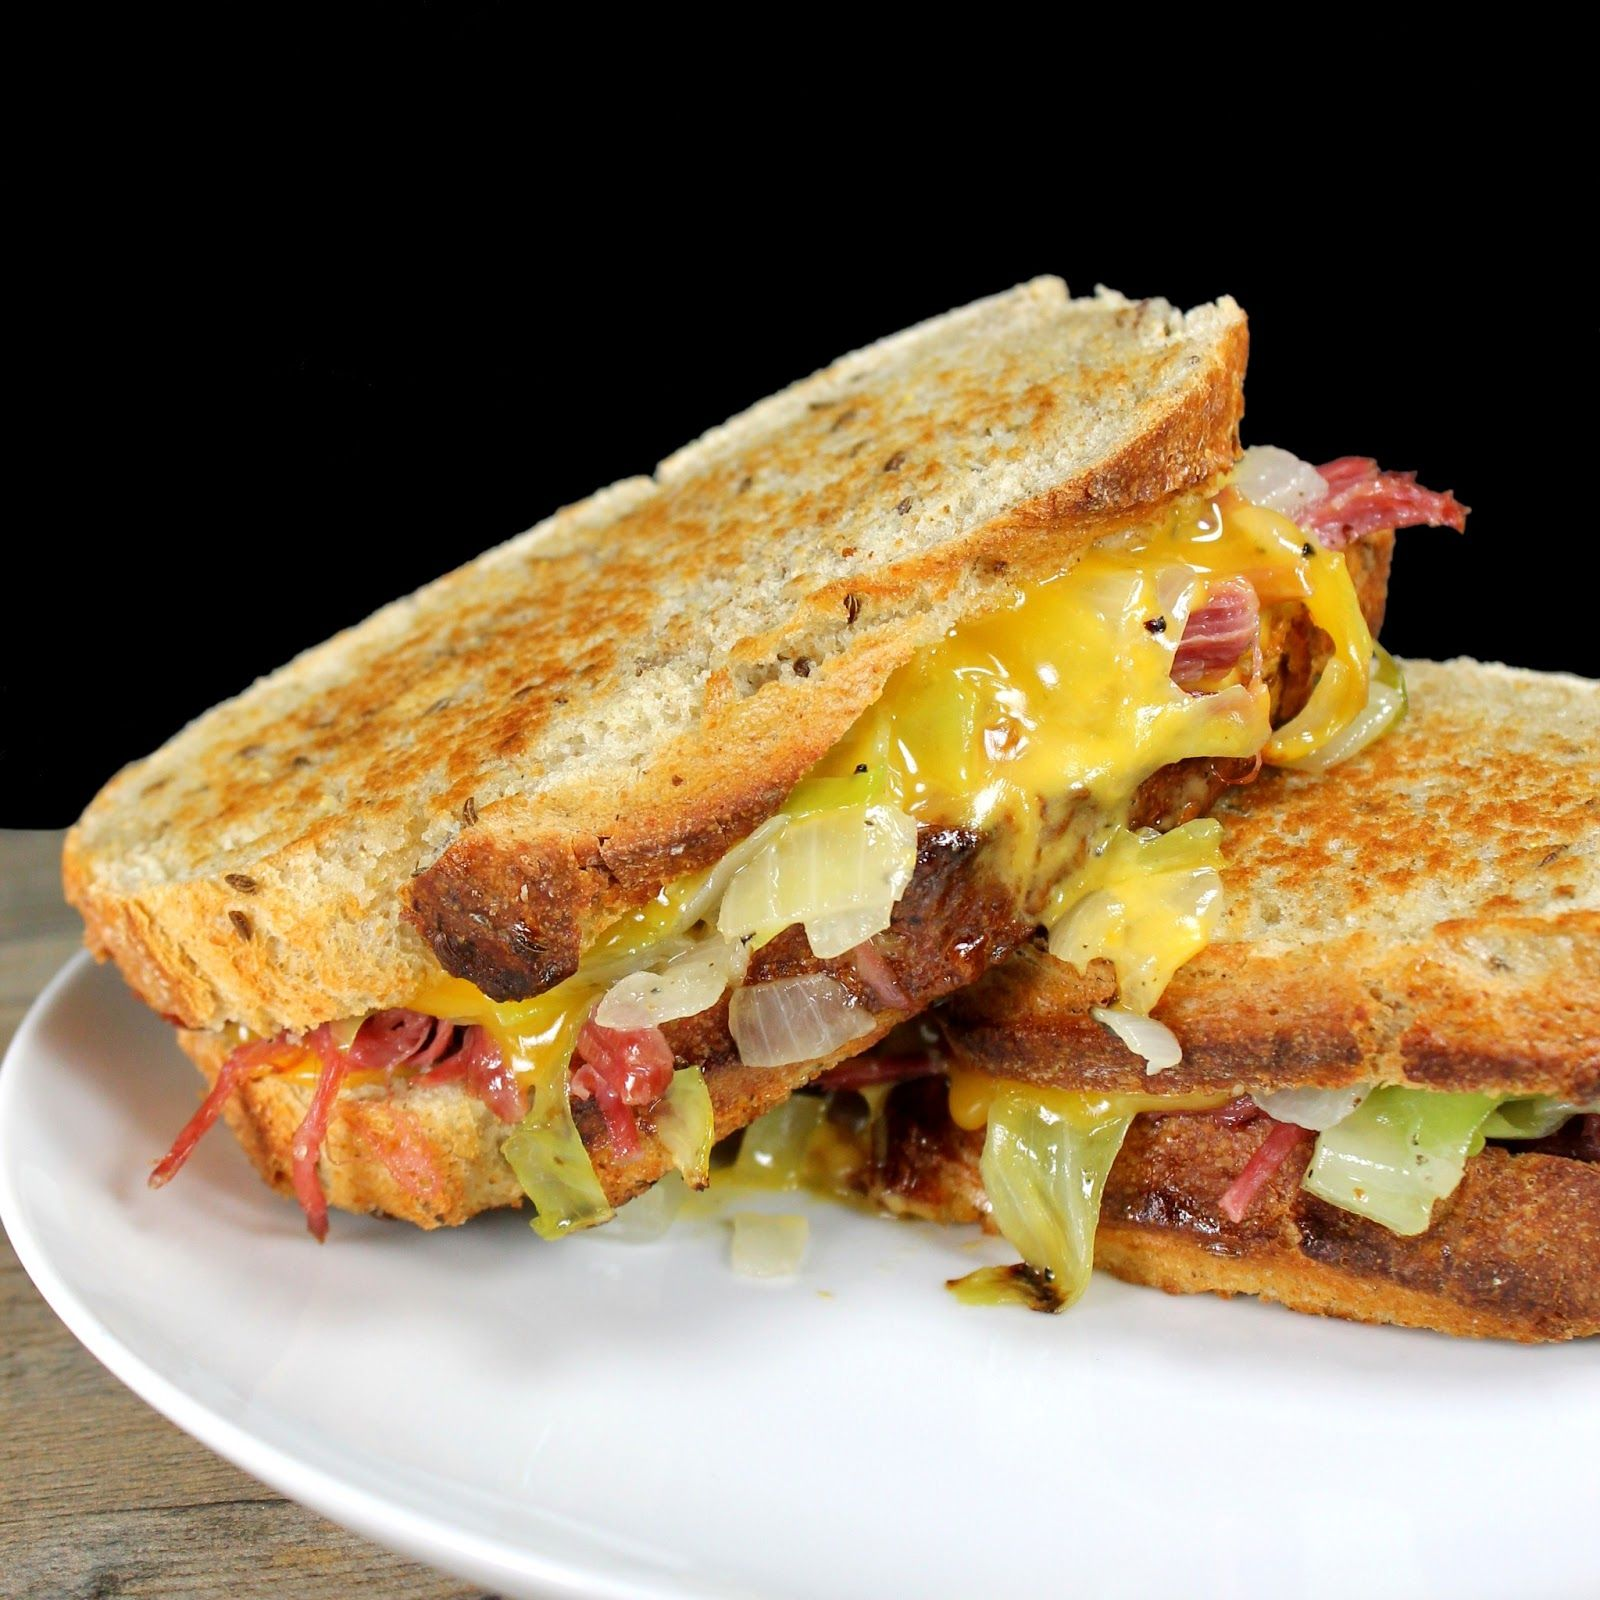 Corned Beef and Cabbage Grilled Cheese on Rye